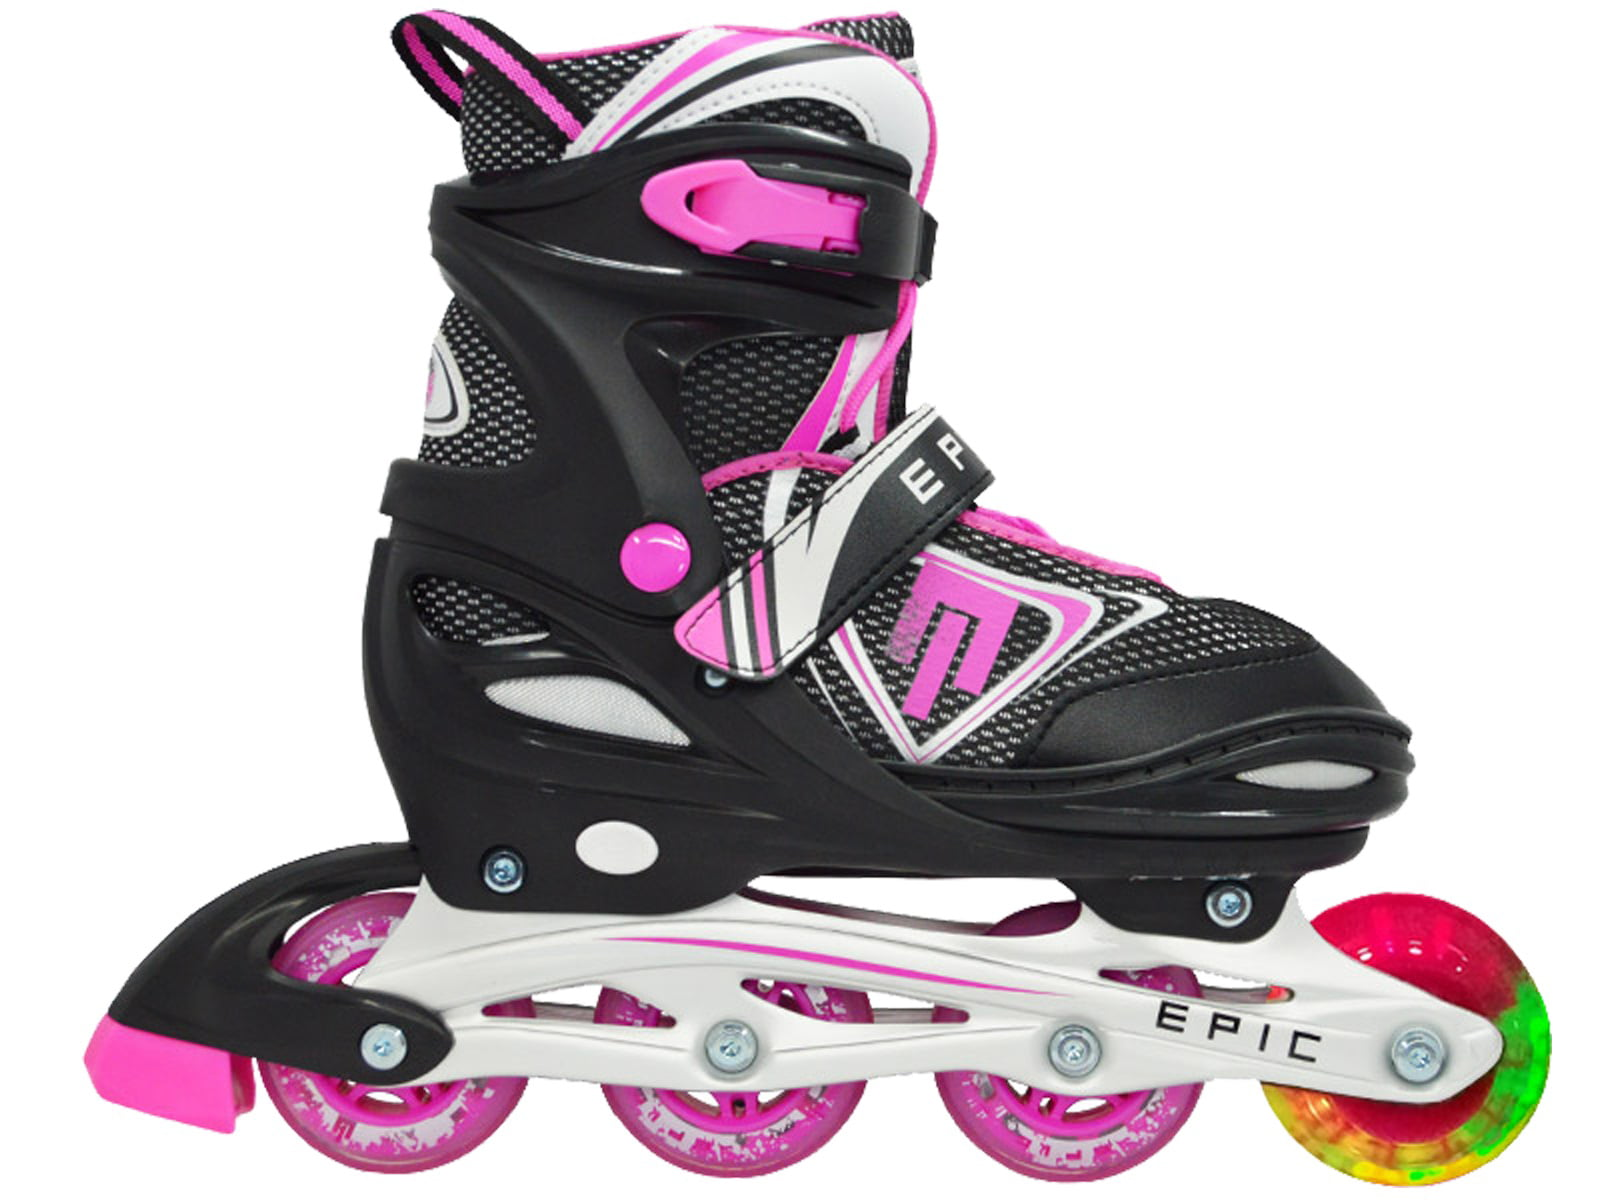 Up Epic Fury Roller Inline Wheels Adjustable wLED Light Skates eWH2EDIY9